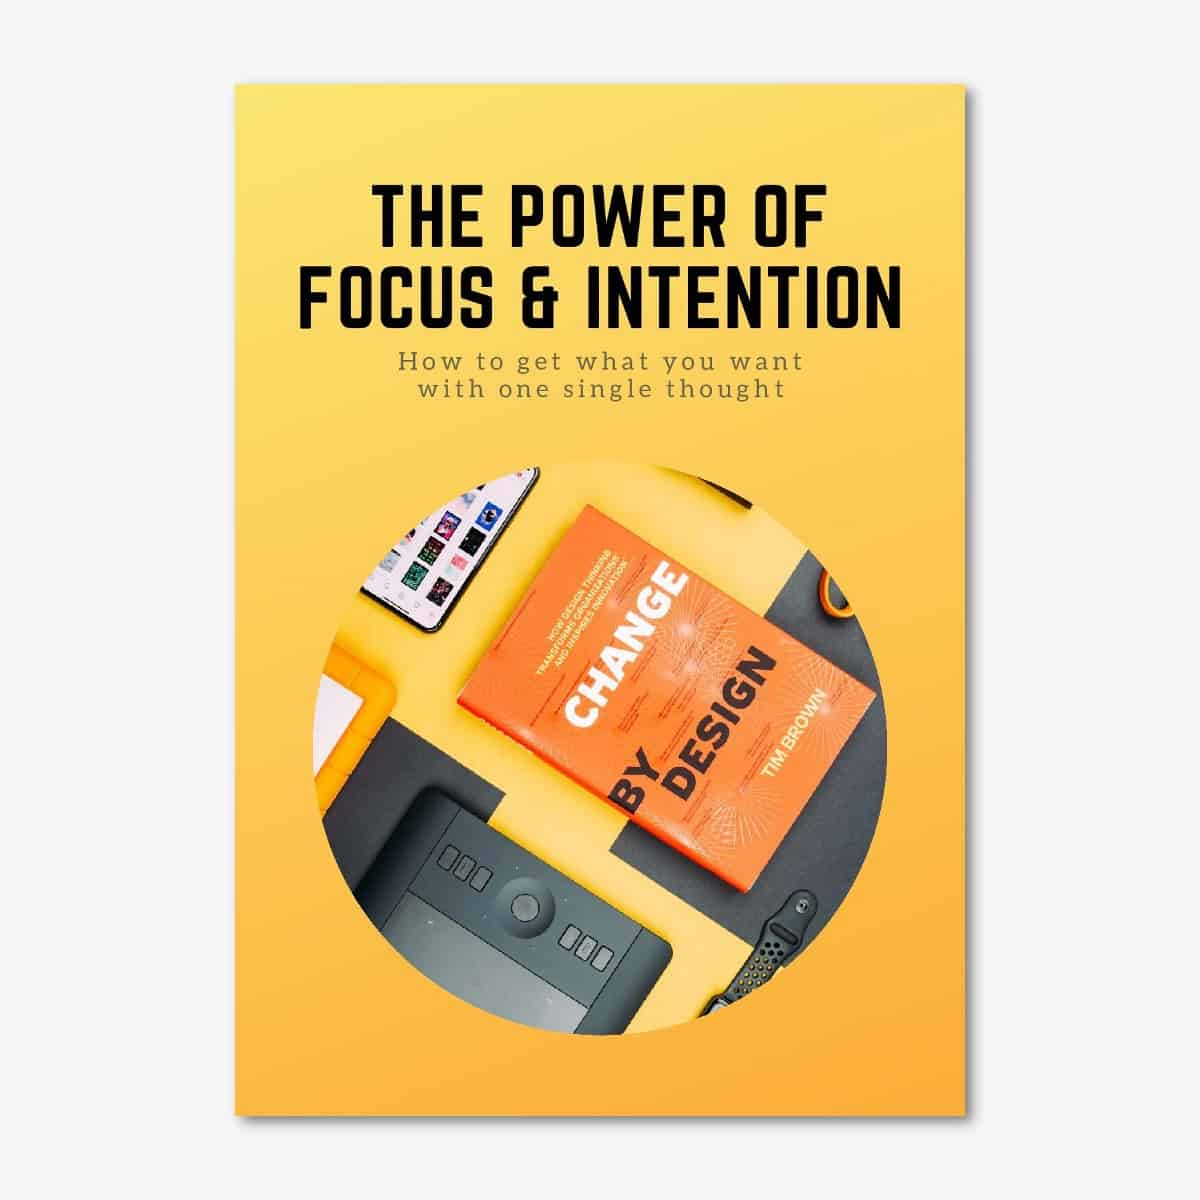 The Power of Focus & Intention